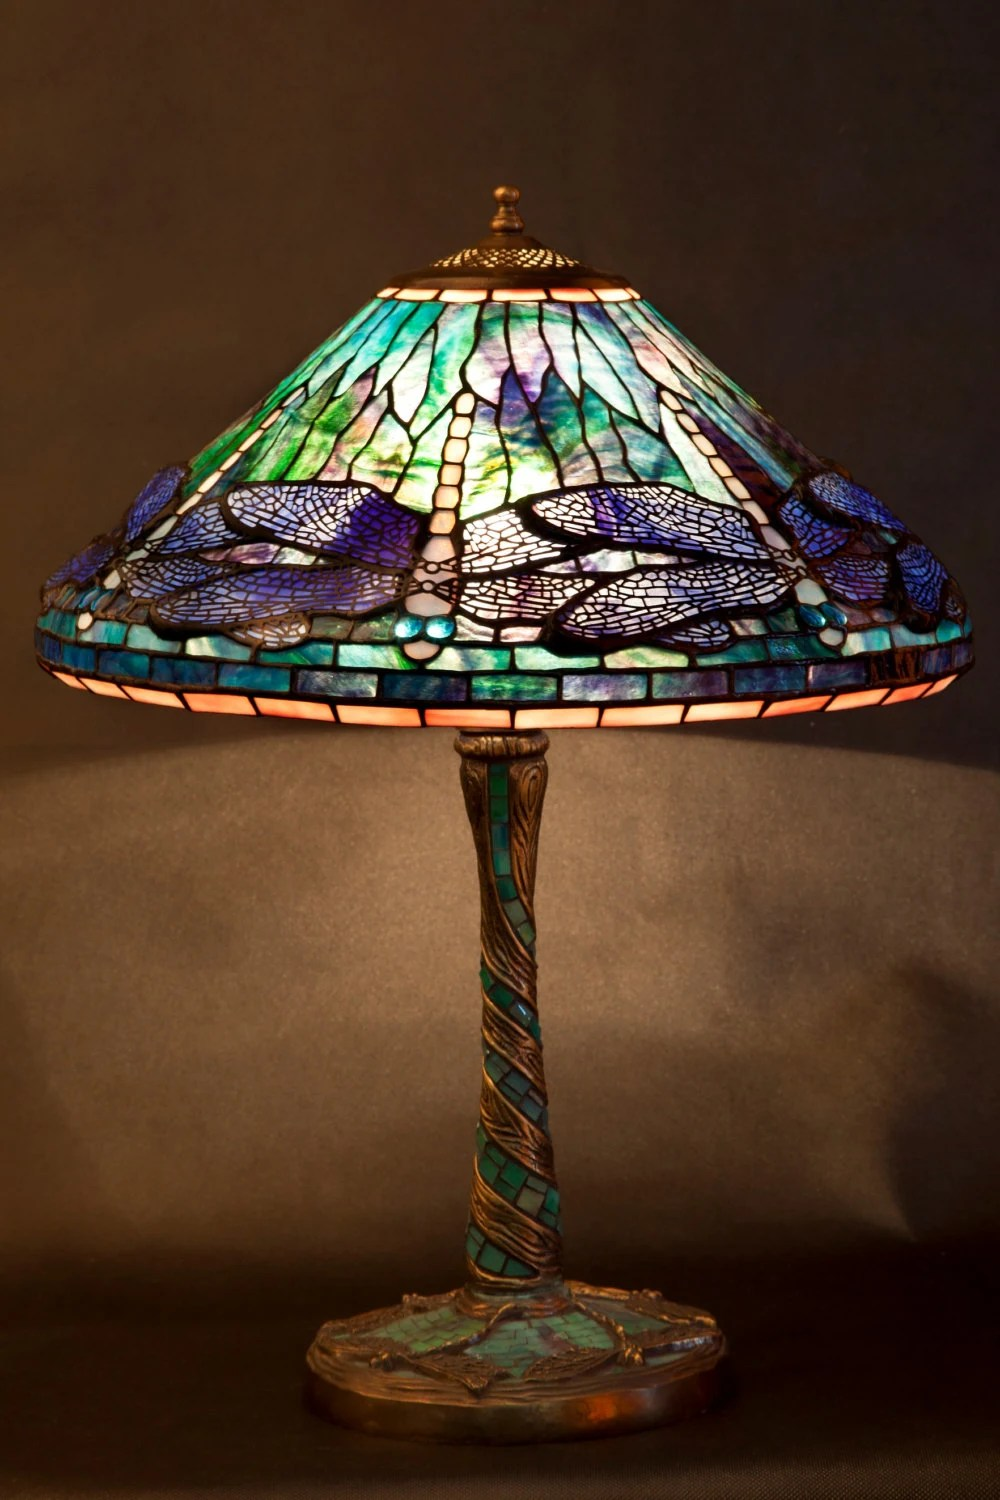 Dragonfly Lamp Stained Glass Tiffany Lamp Desk Lamp